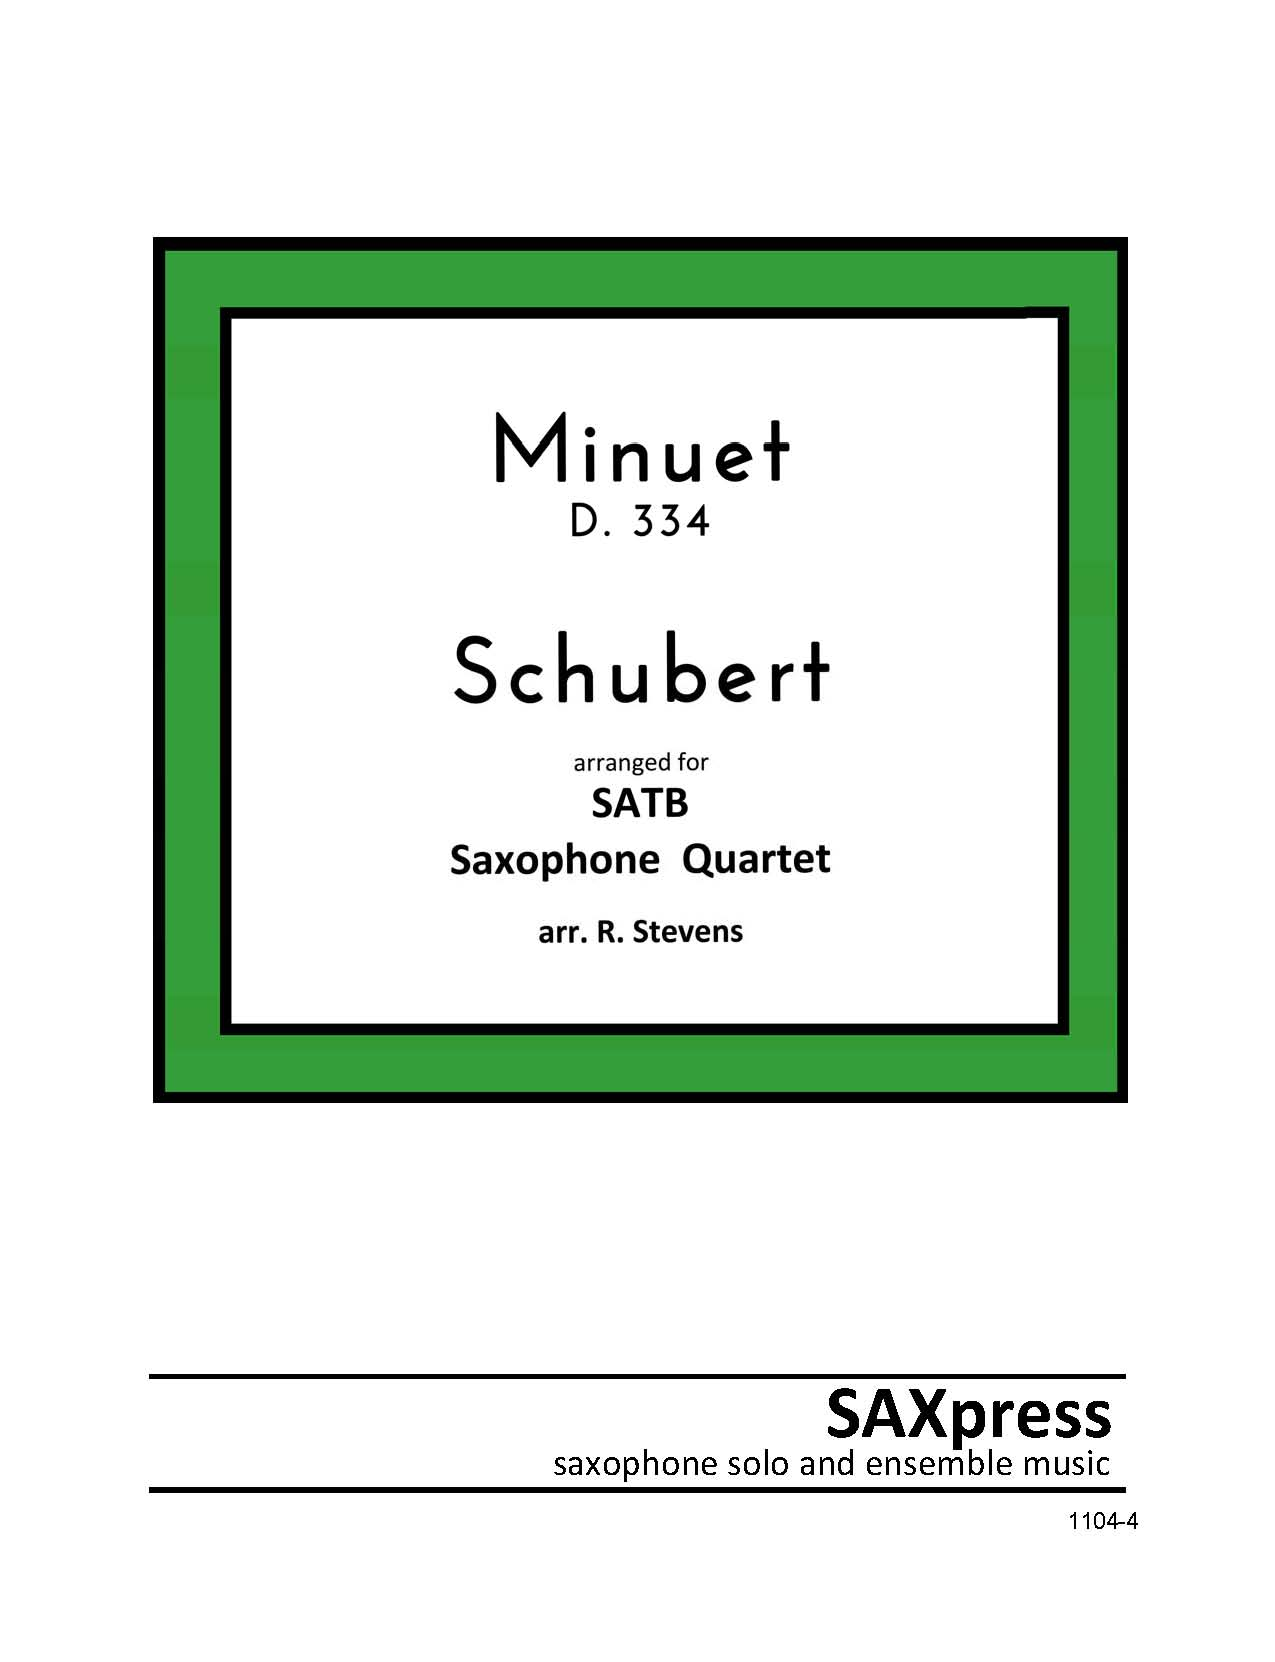 SATB Sax Quartet | Minuet D.334 by Schubert